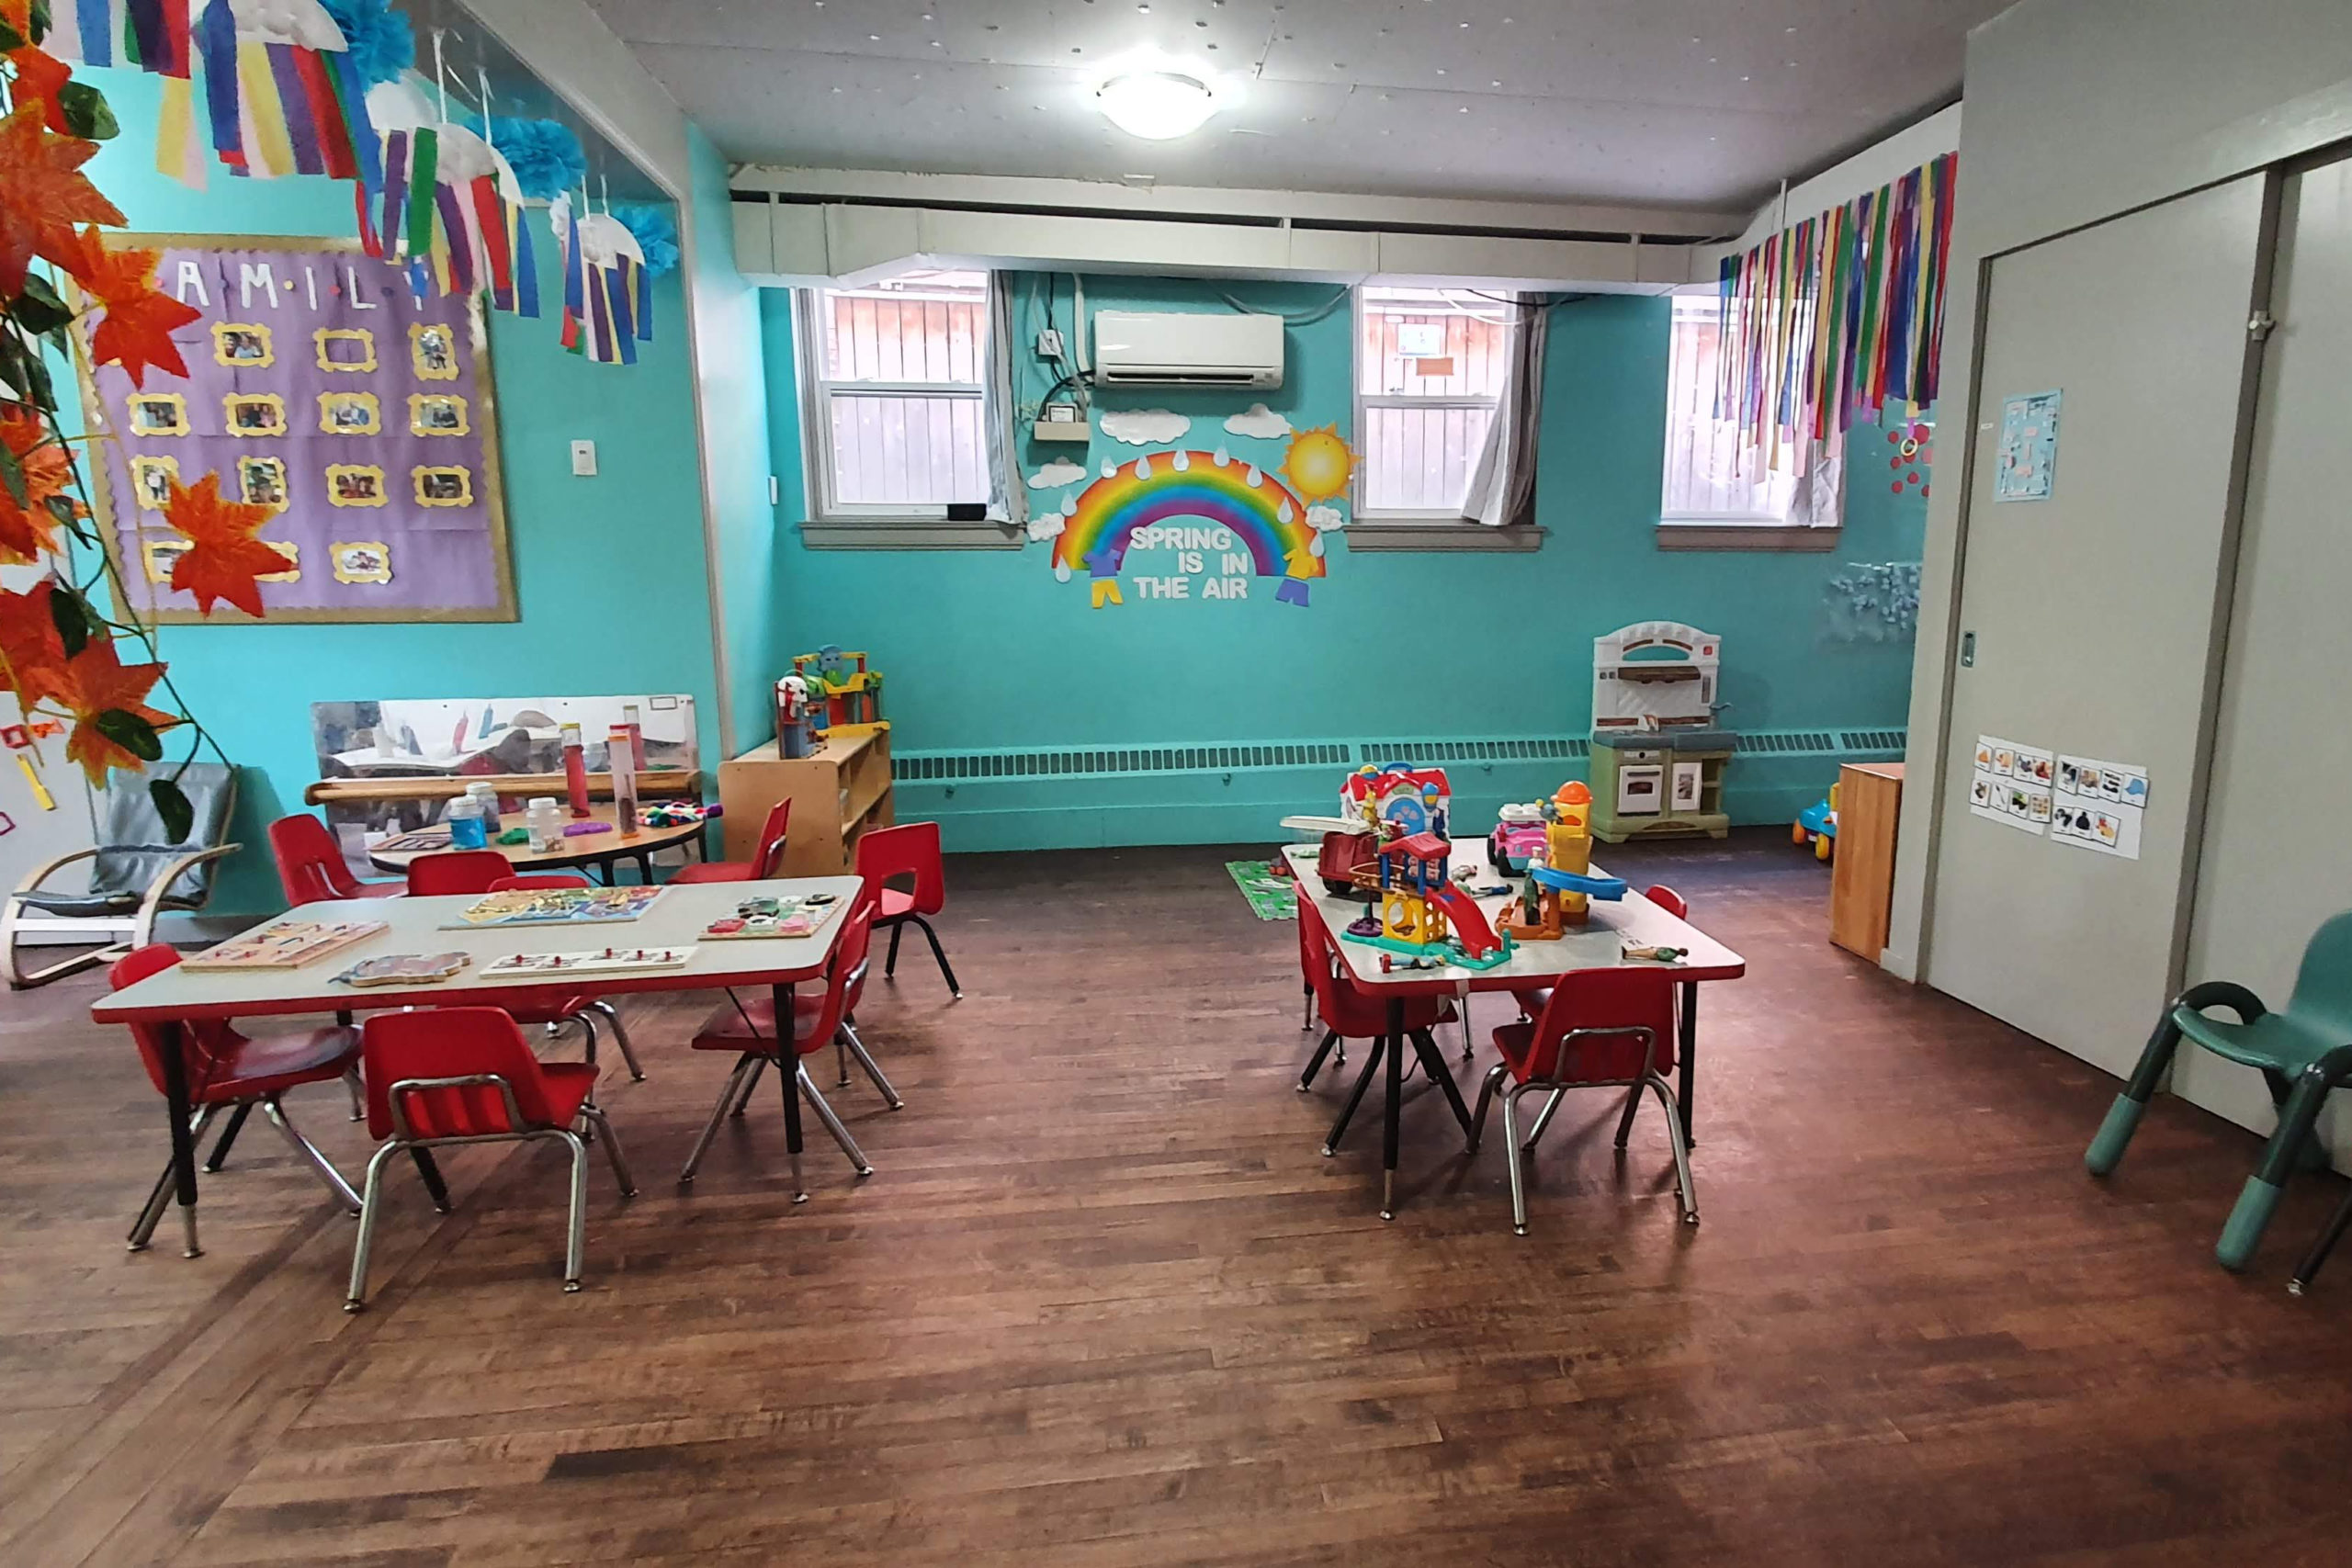 toddler classroom with tables and toys